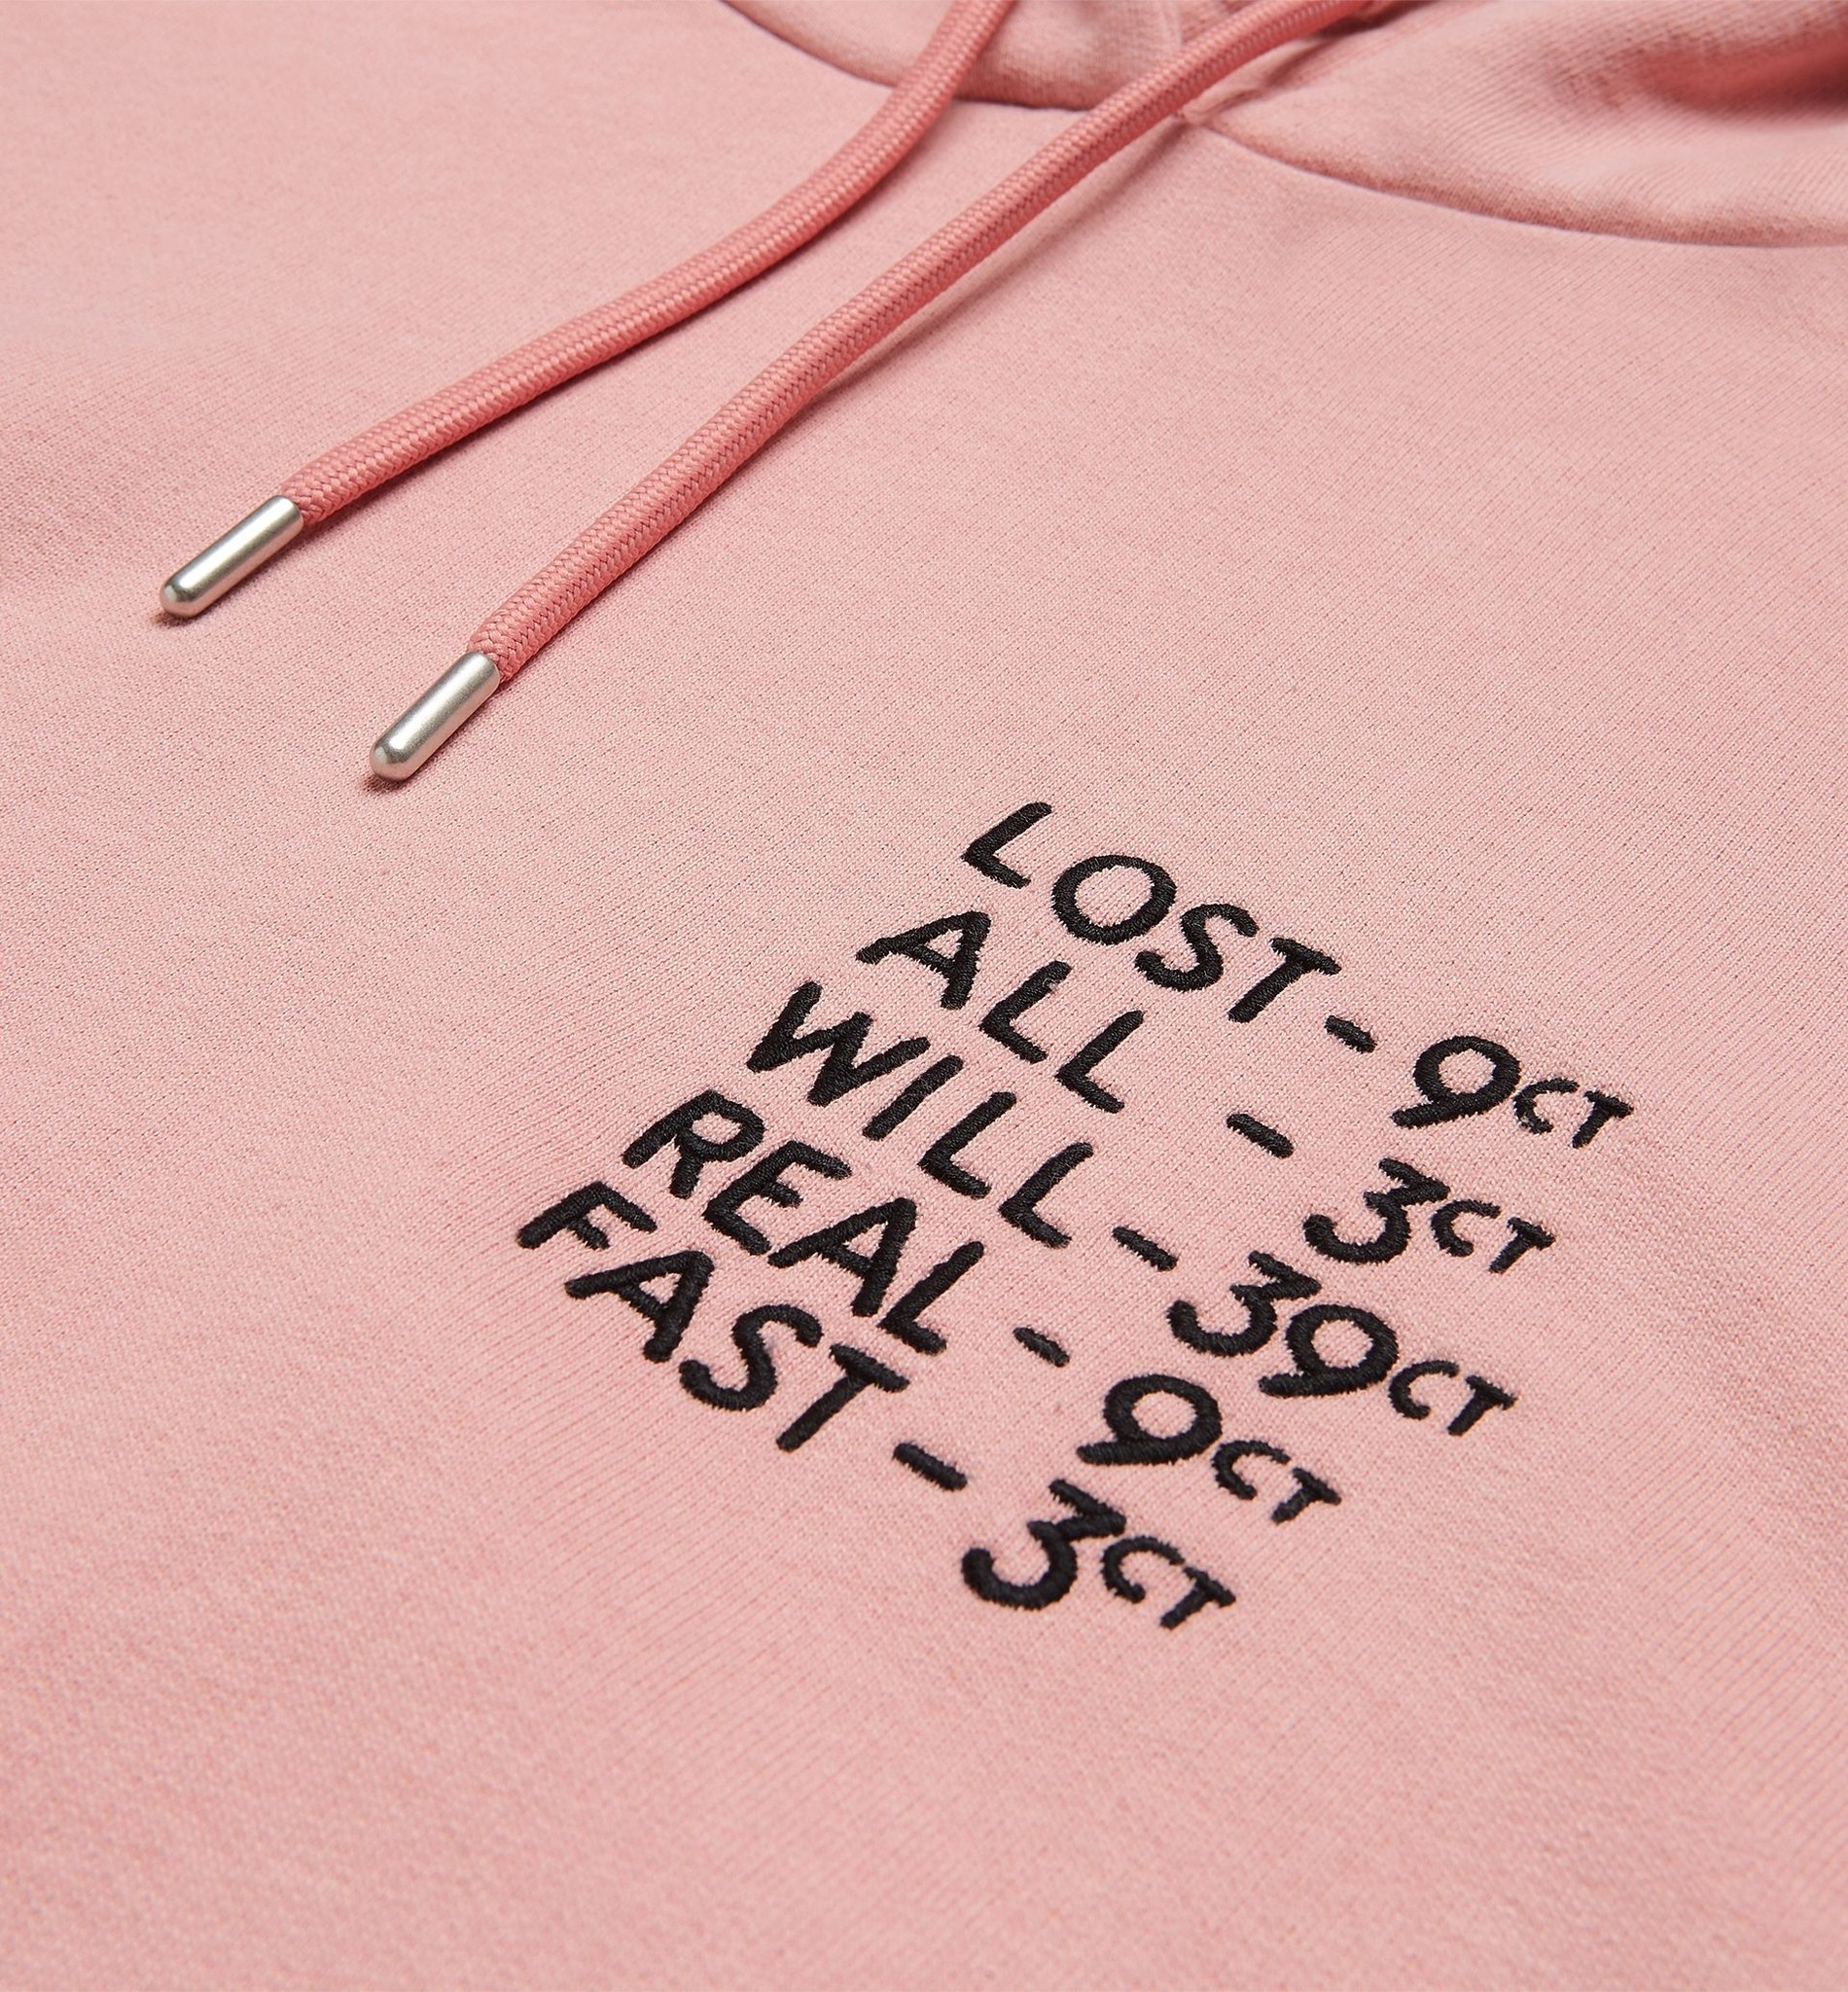 BY PARRA LOST ALL WILL FAST PINK HOODIE 44460 WOEI